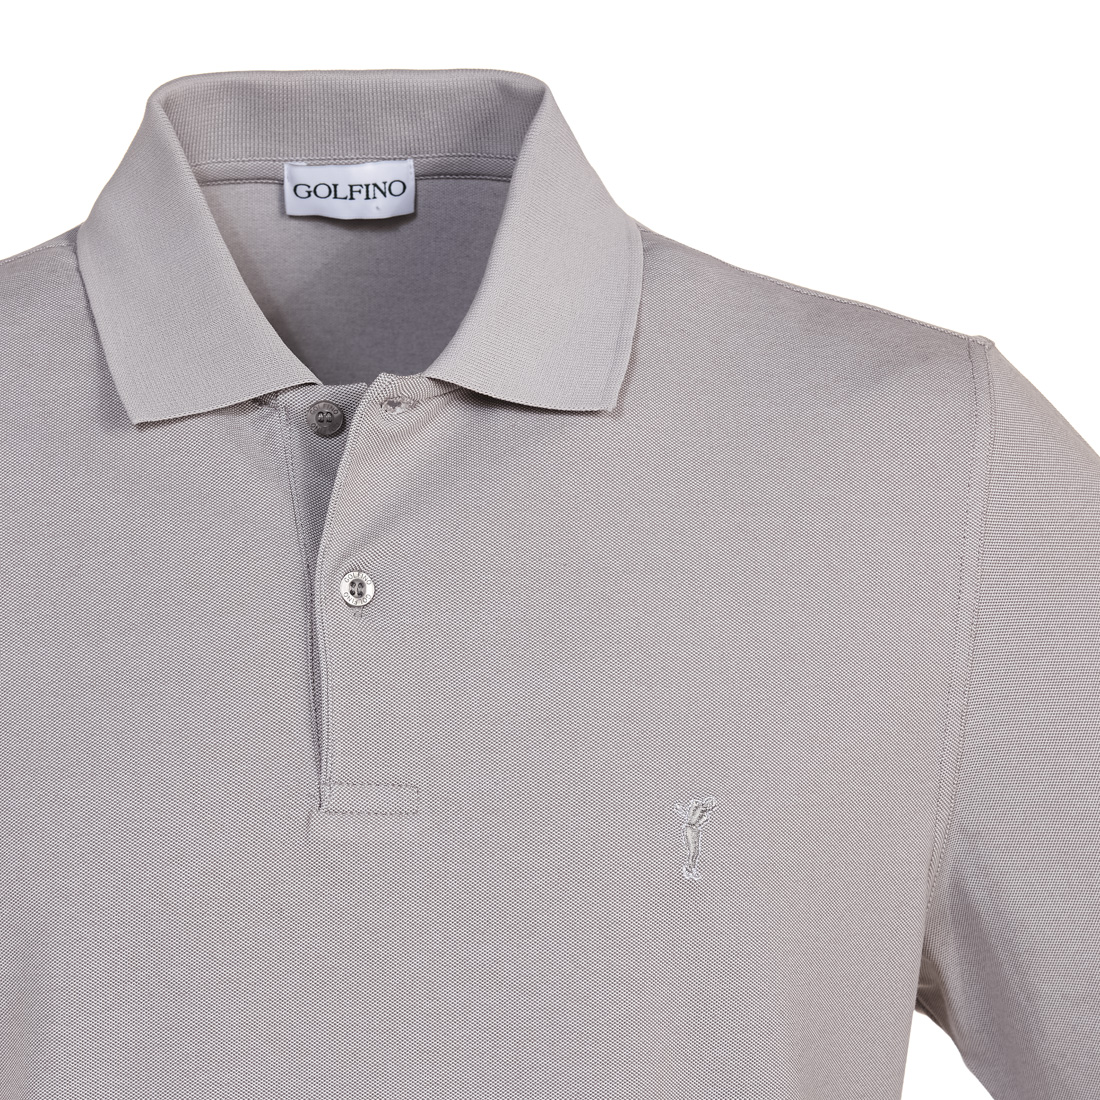 Halbarm Golfpolo mit UV-Schutz in Relaxed Fit